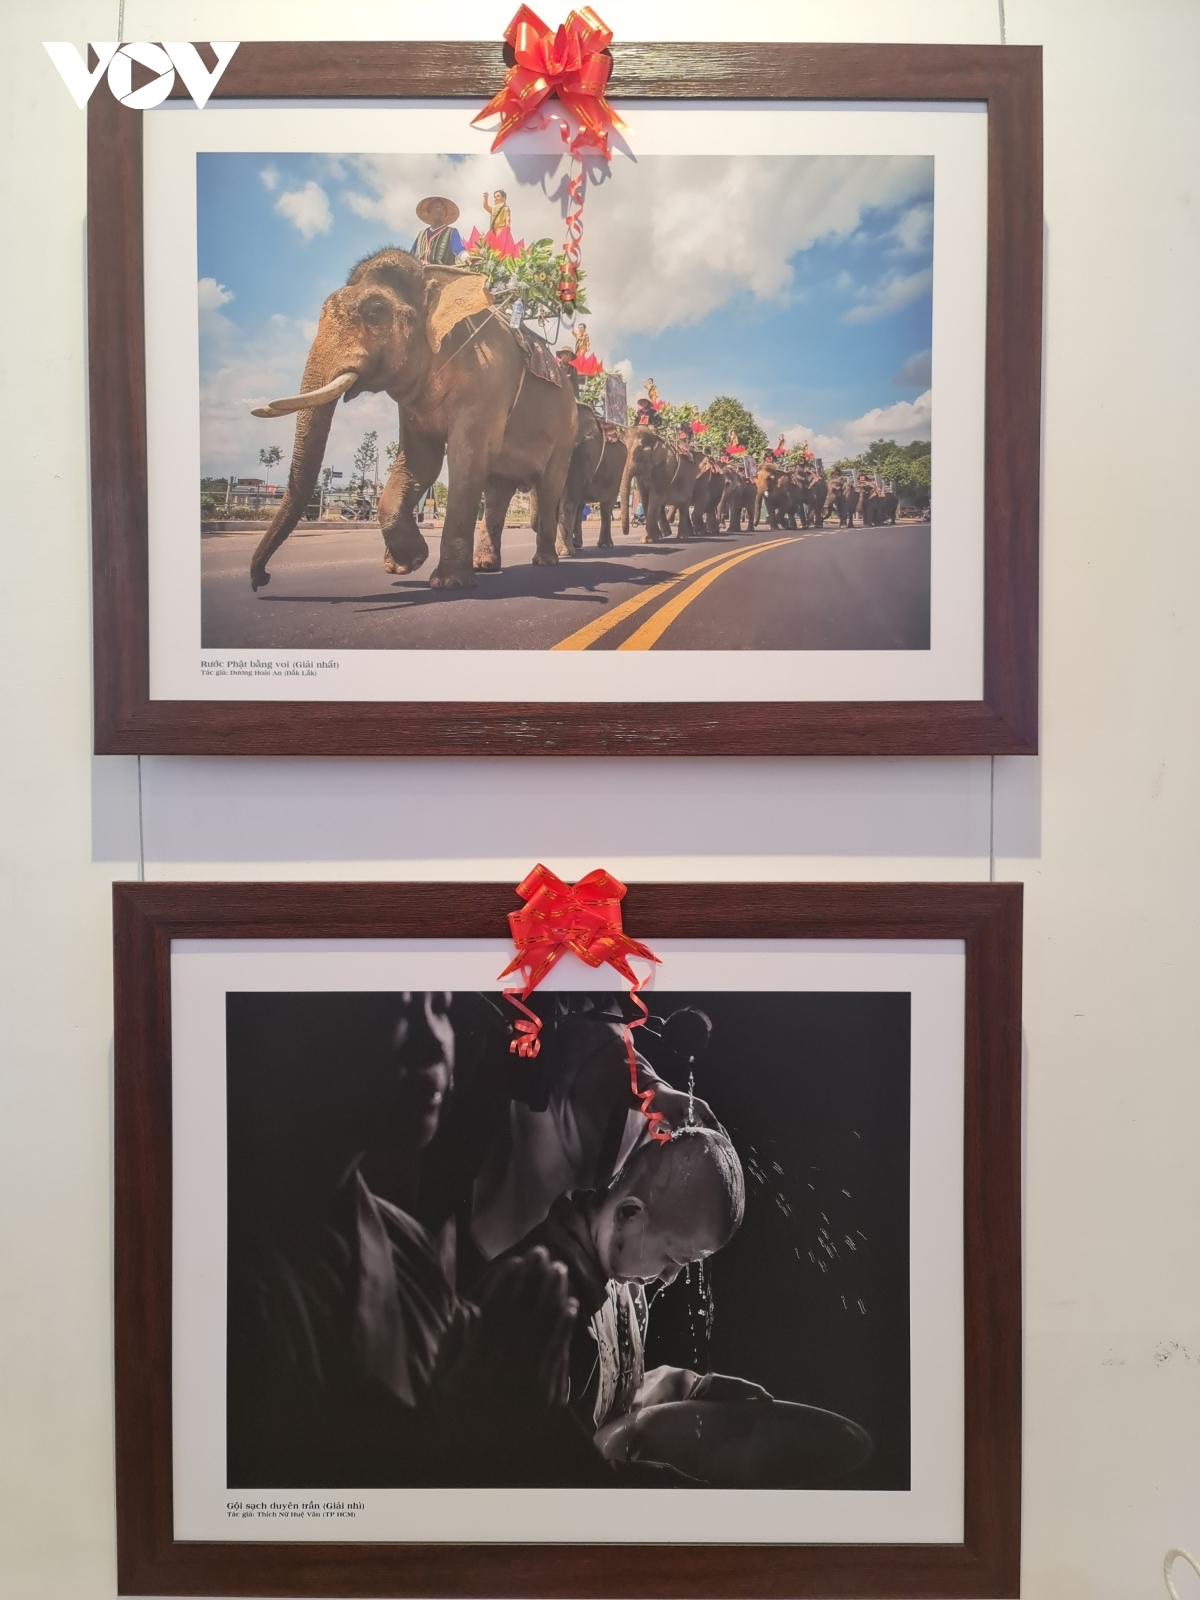 The images given the first and second prizes are put on display.